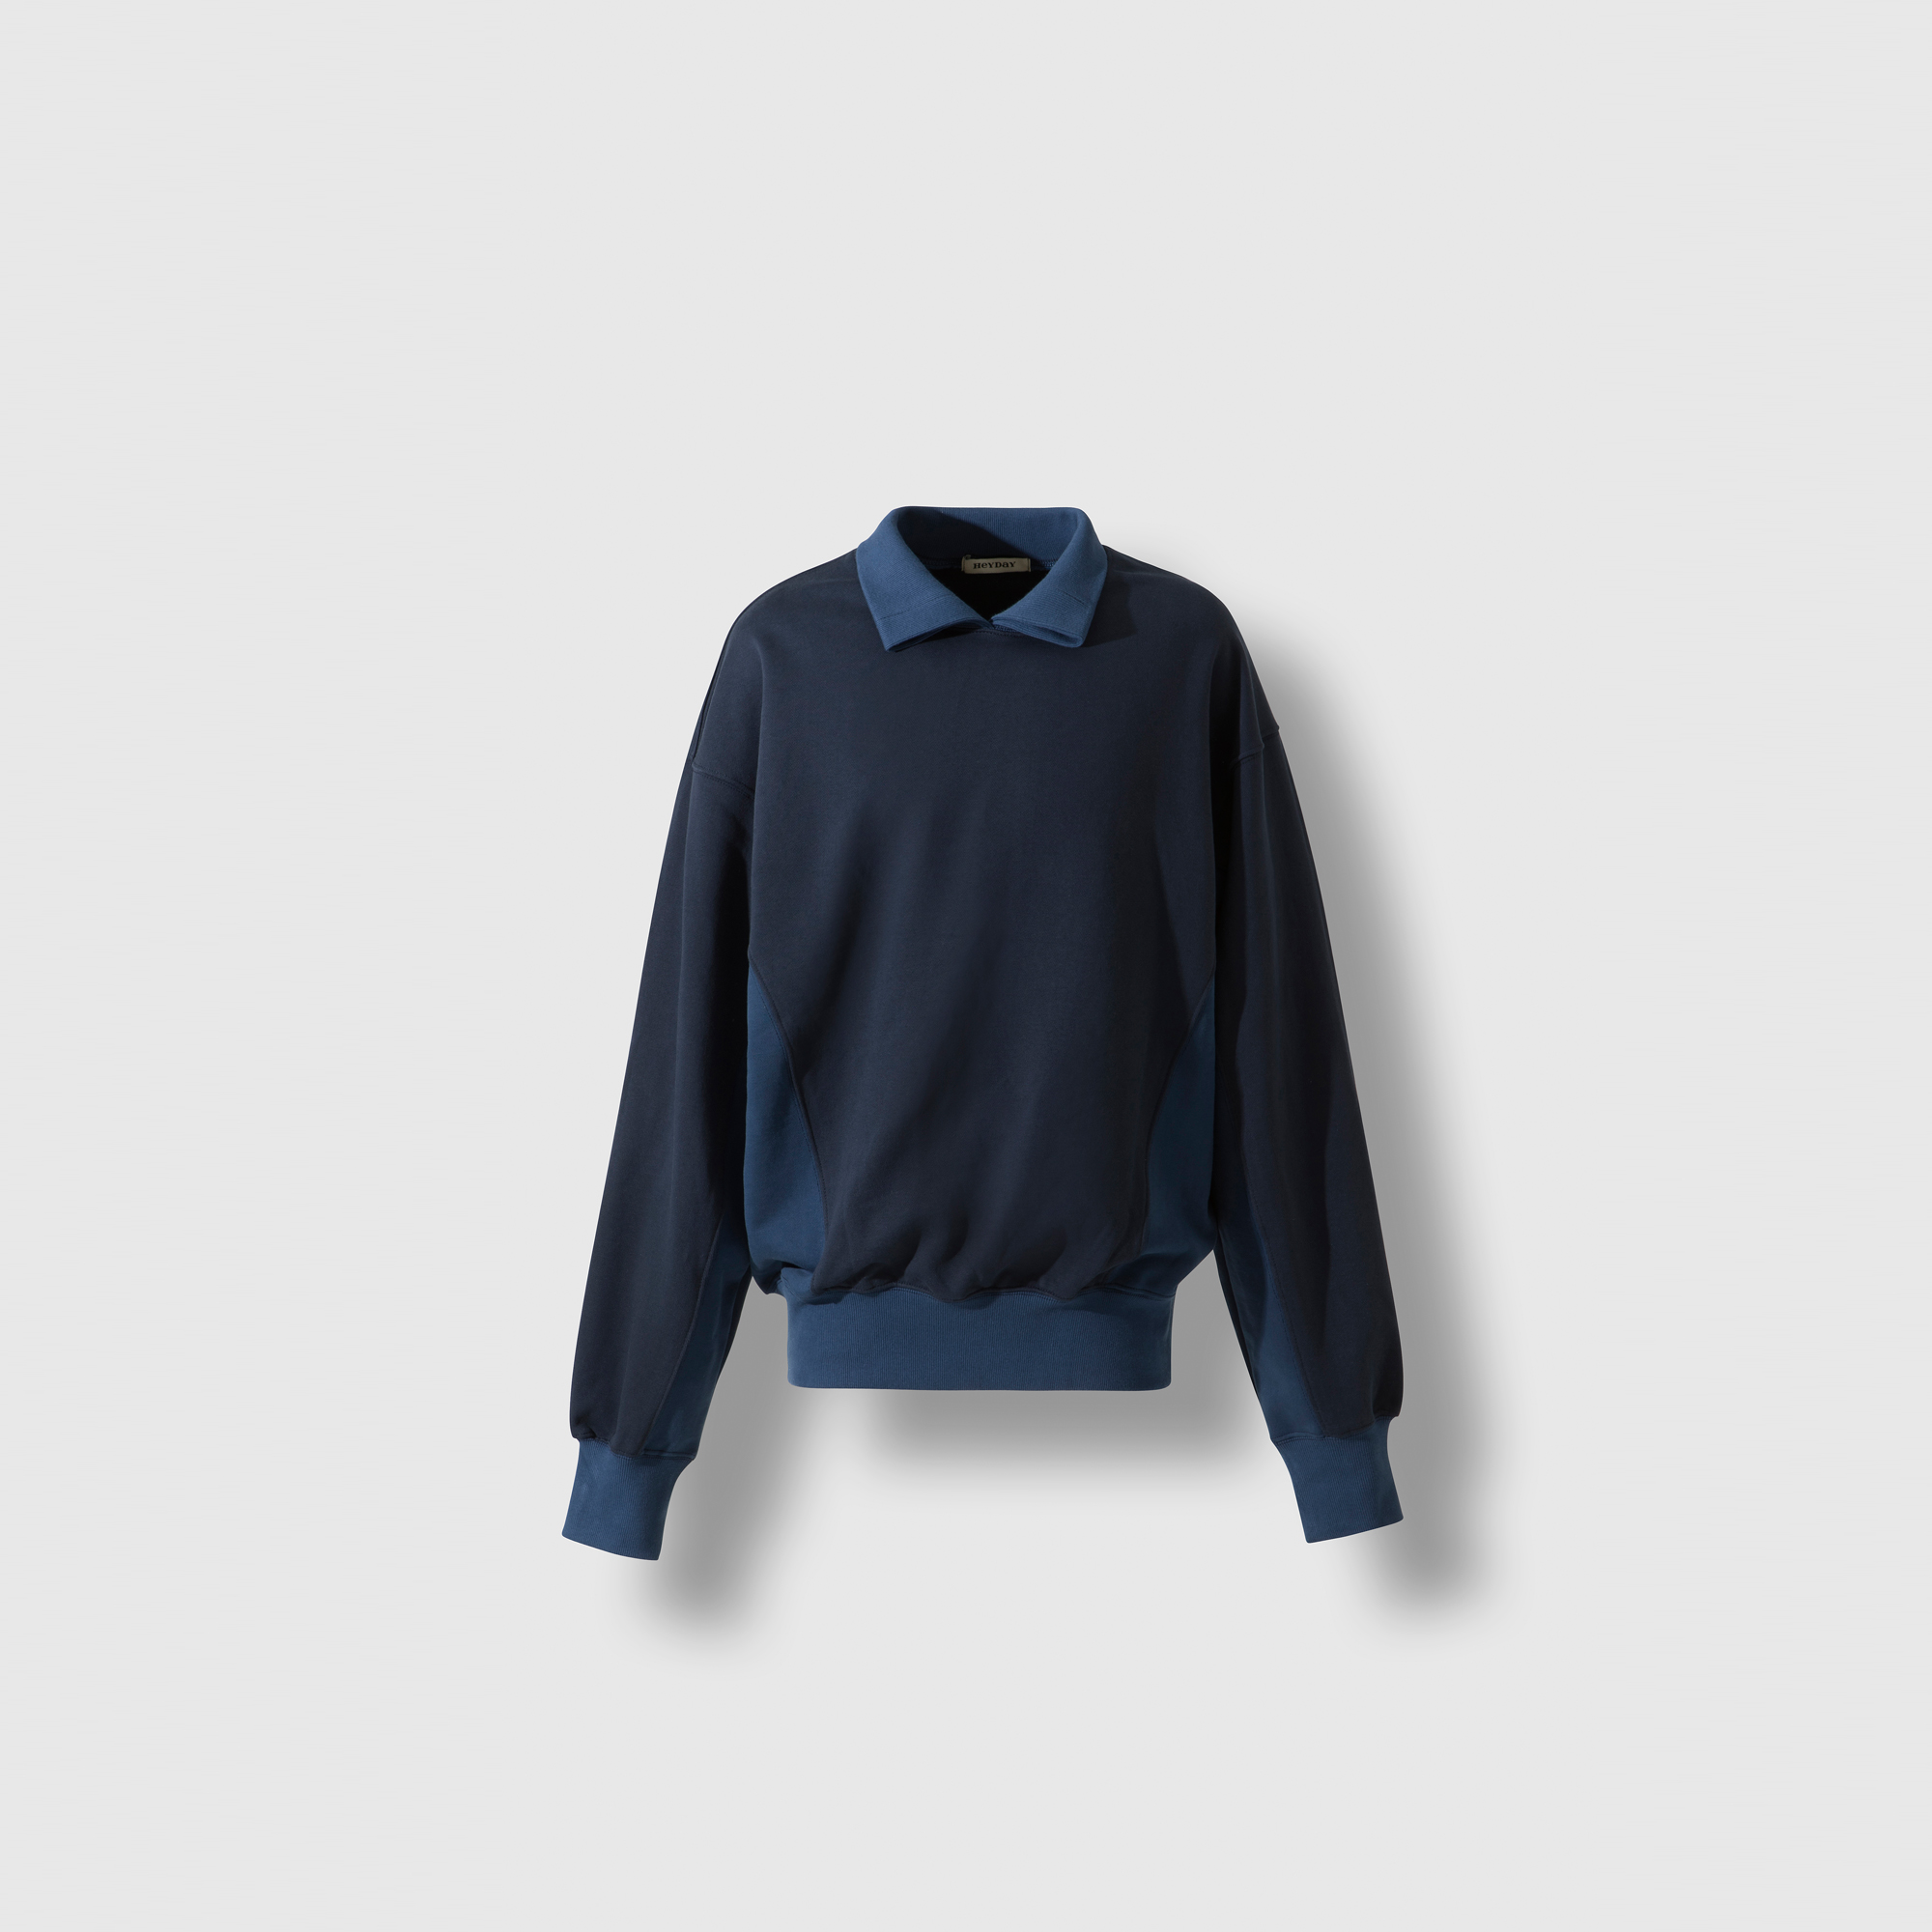 Reversible polo sweatshirts blue/navy